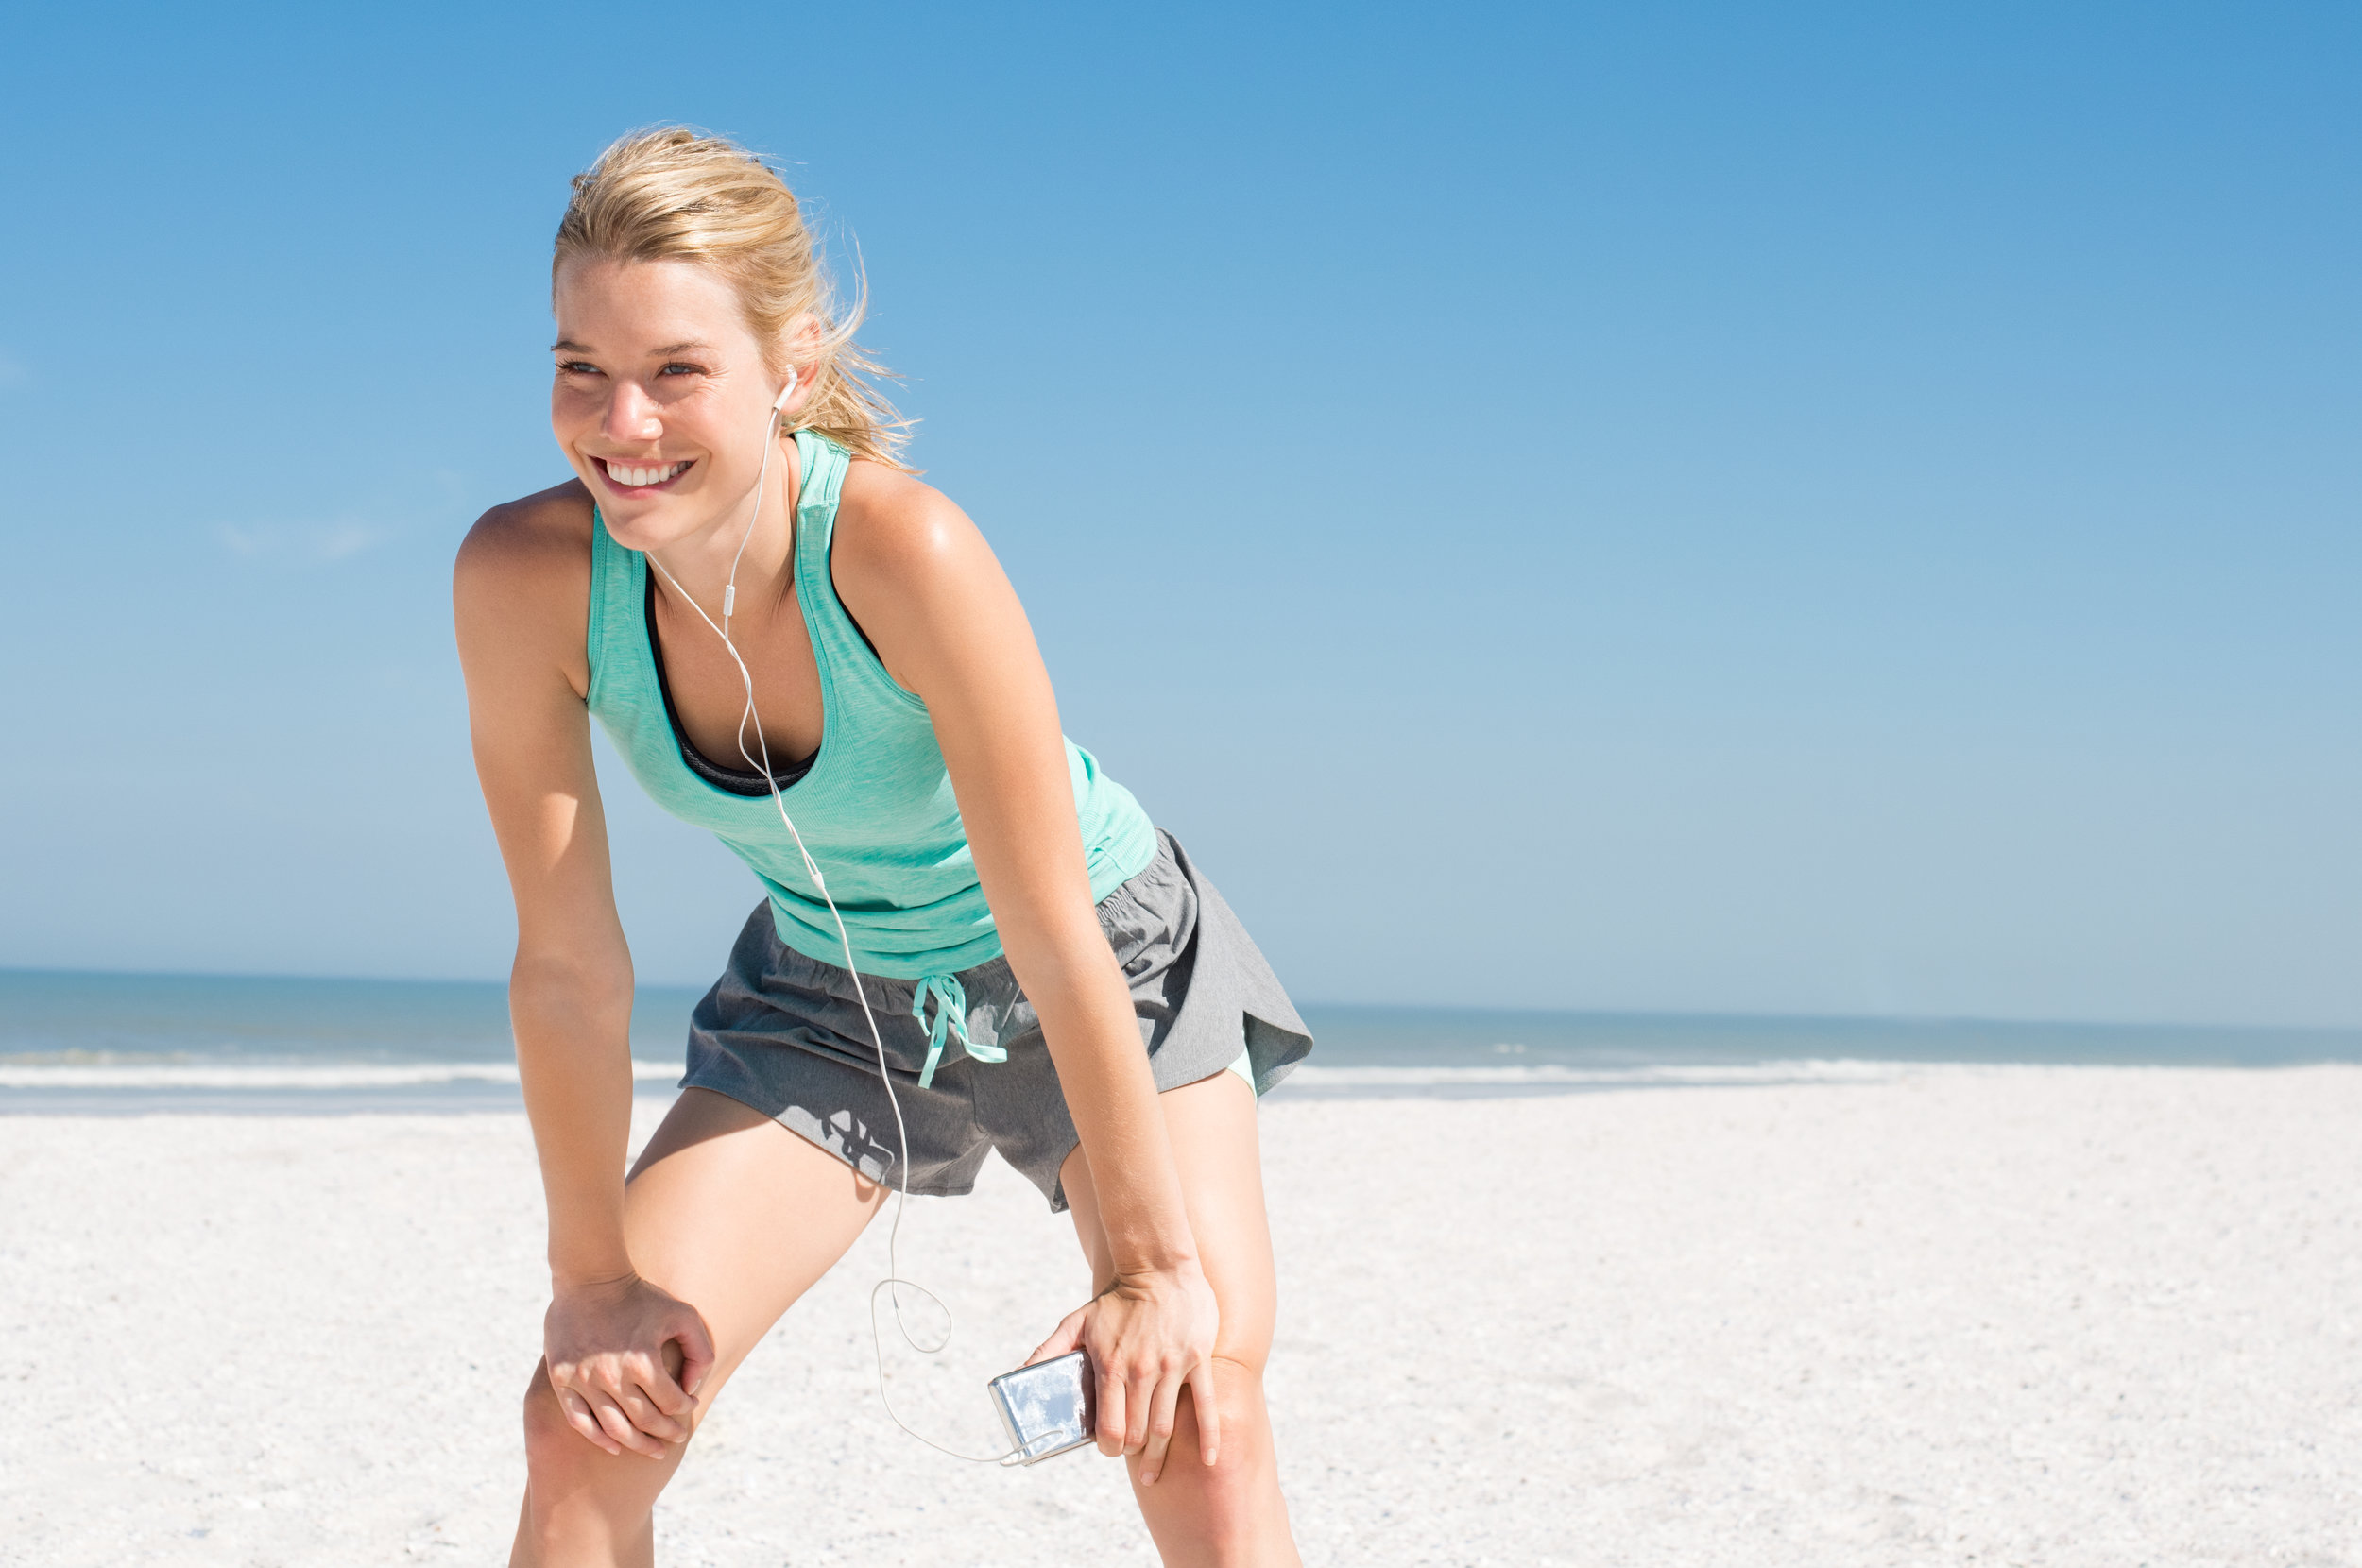 iStock- woman exercising on beach.jpg